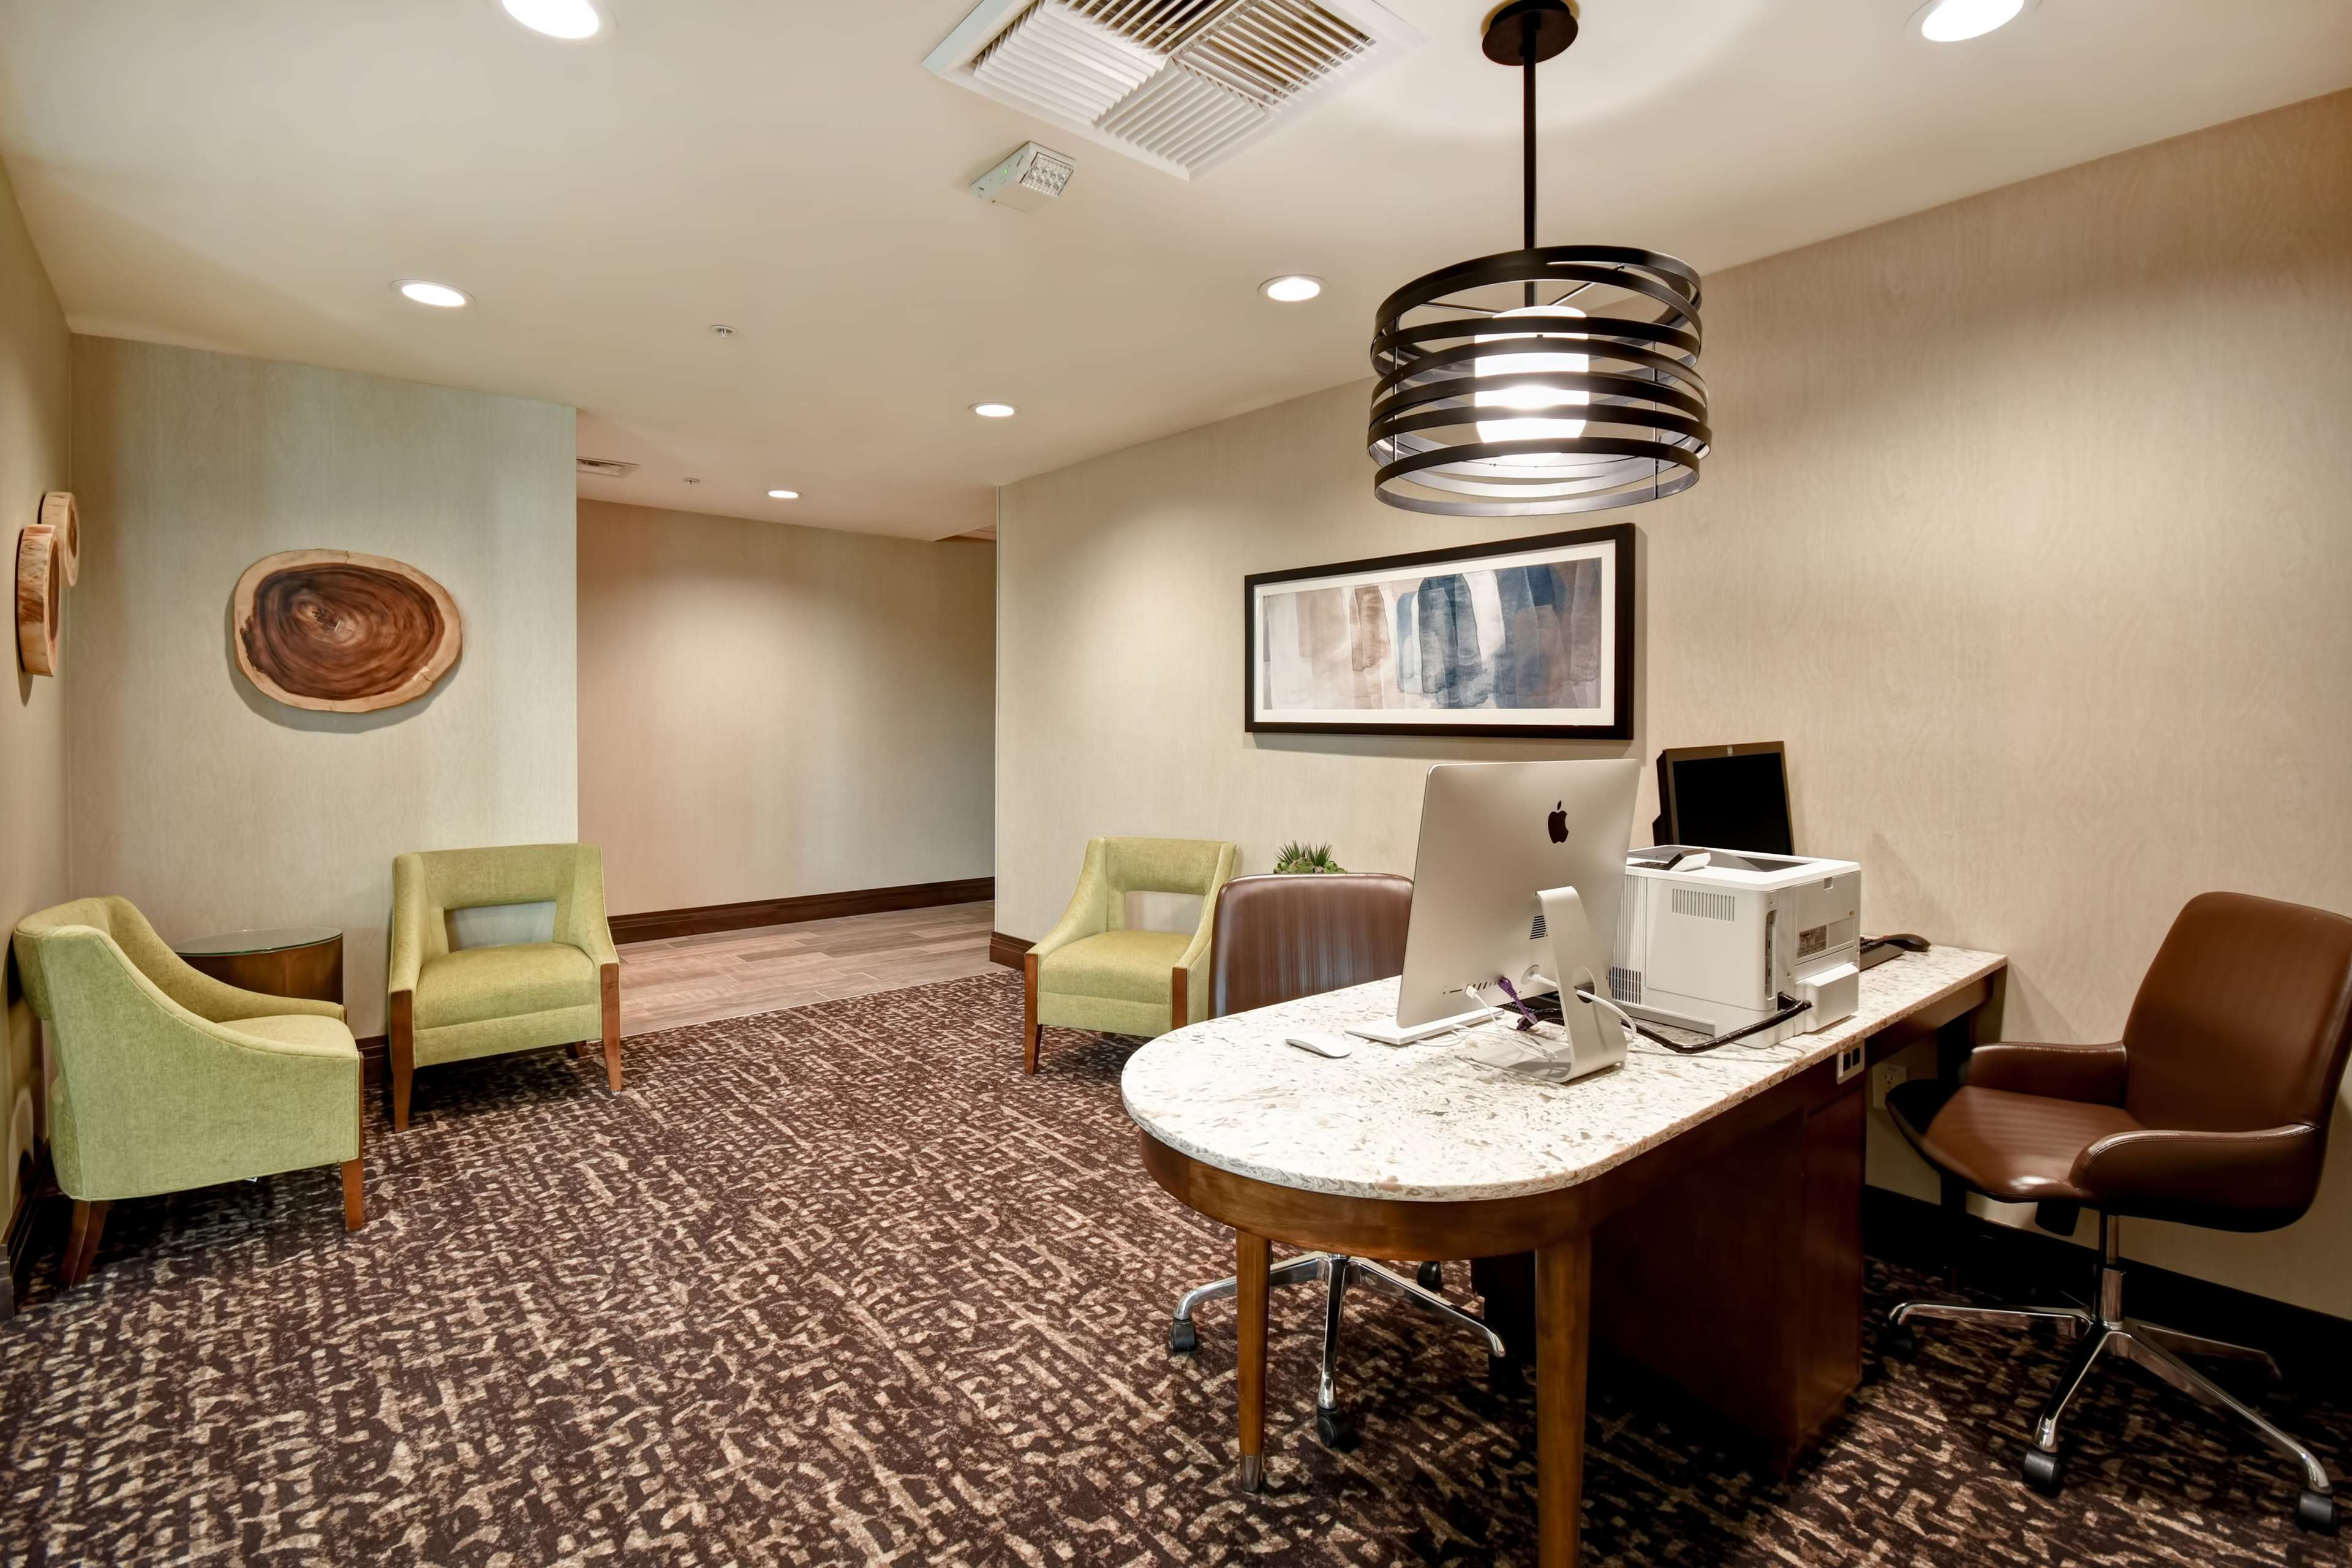 Homewood Suites by Hilton Pleasant Hill Concord image 15